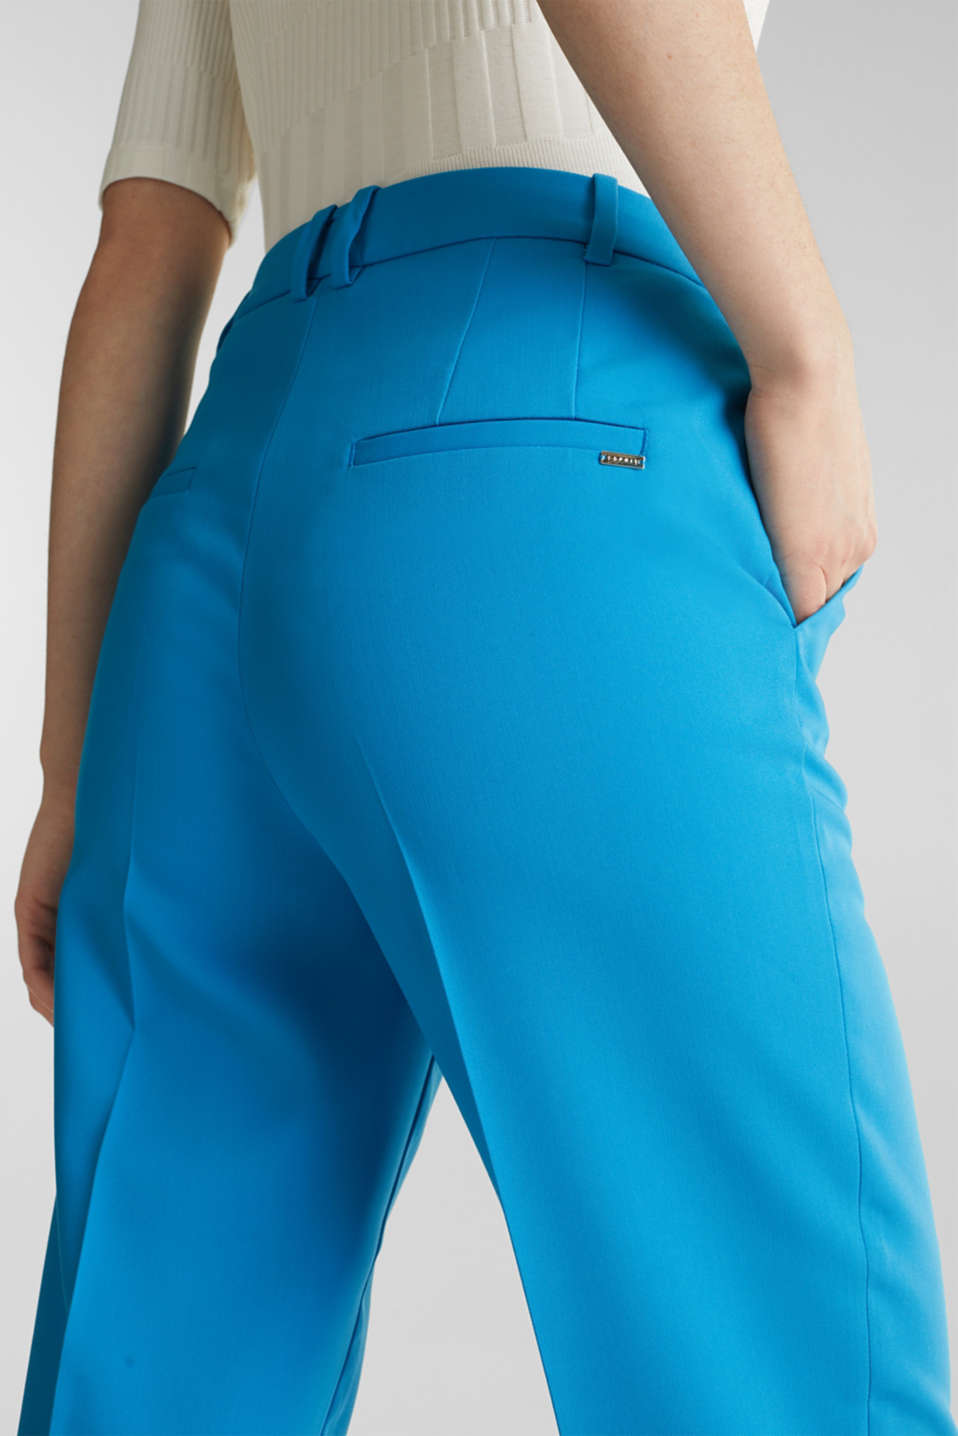 SHIMMER mix + match stretch trousers, DARK TURQUOISE, detail image number 2